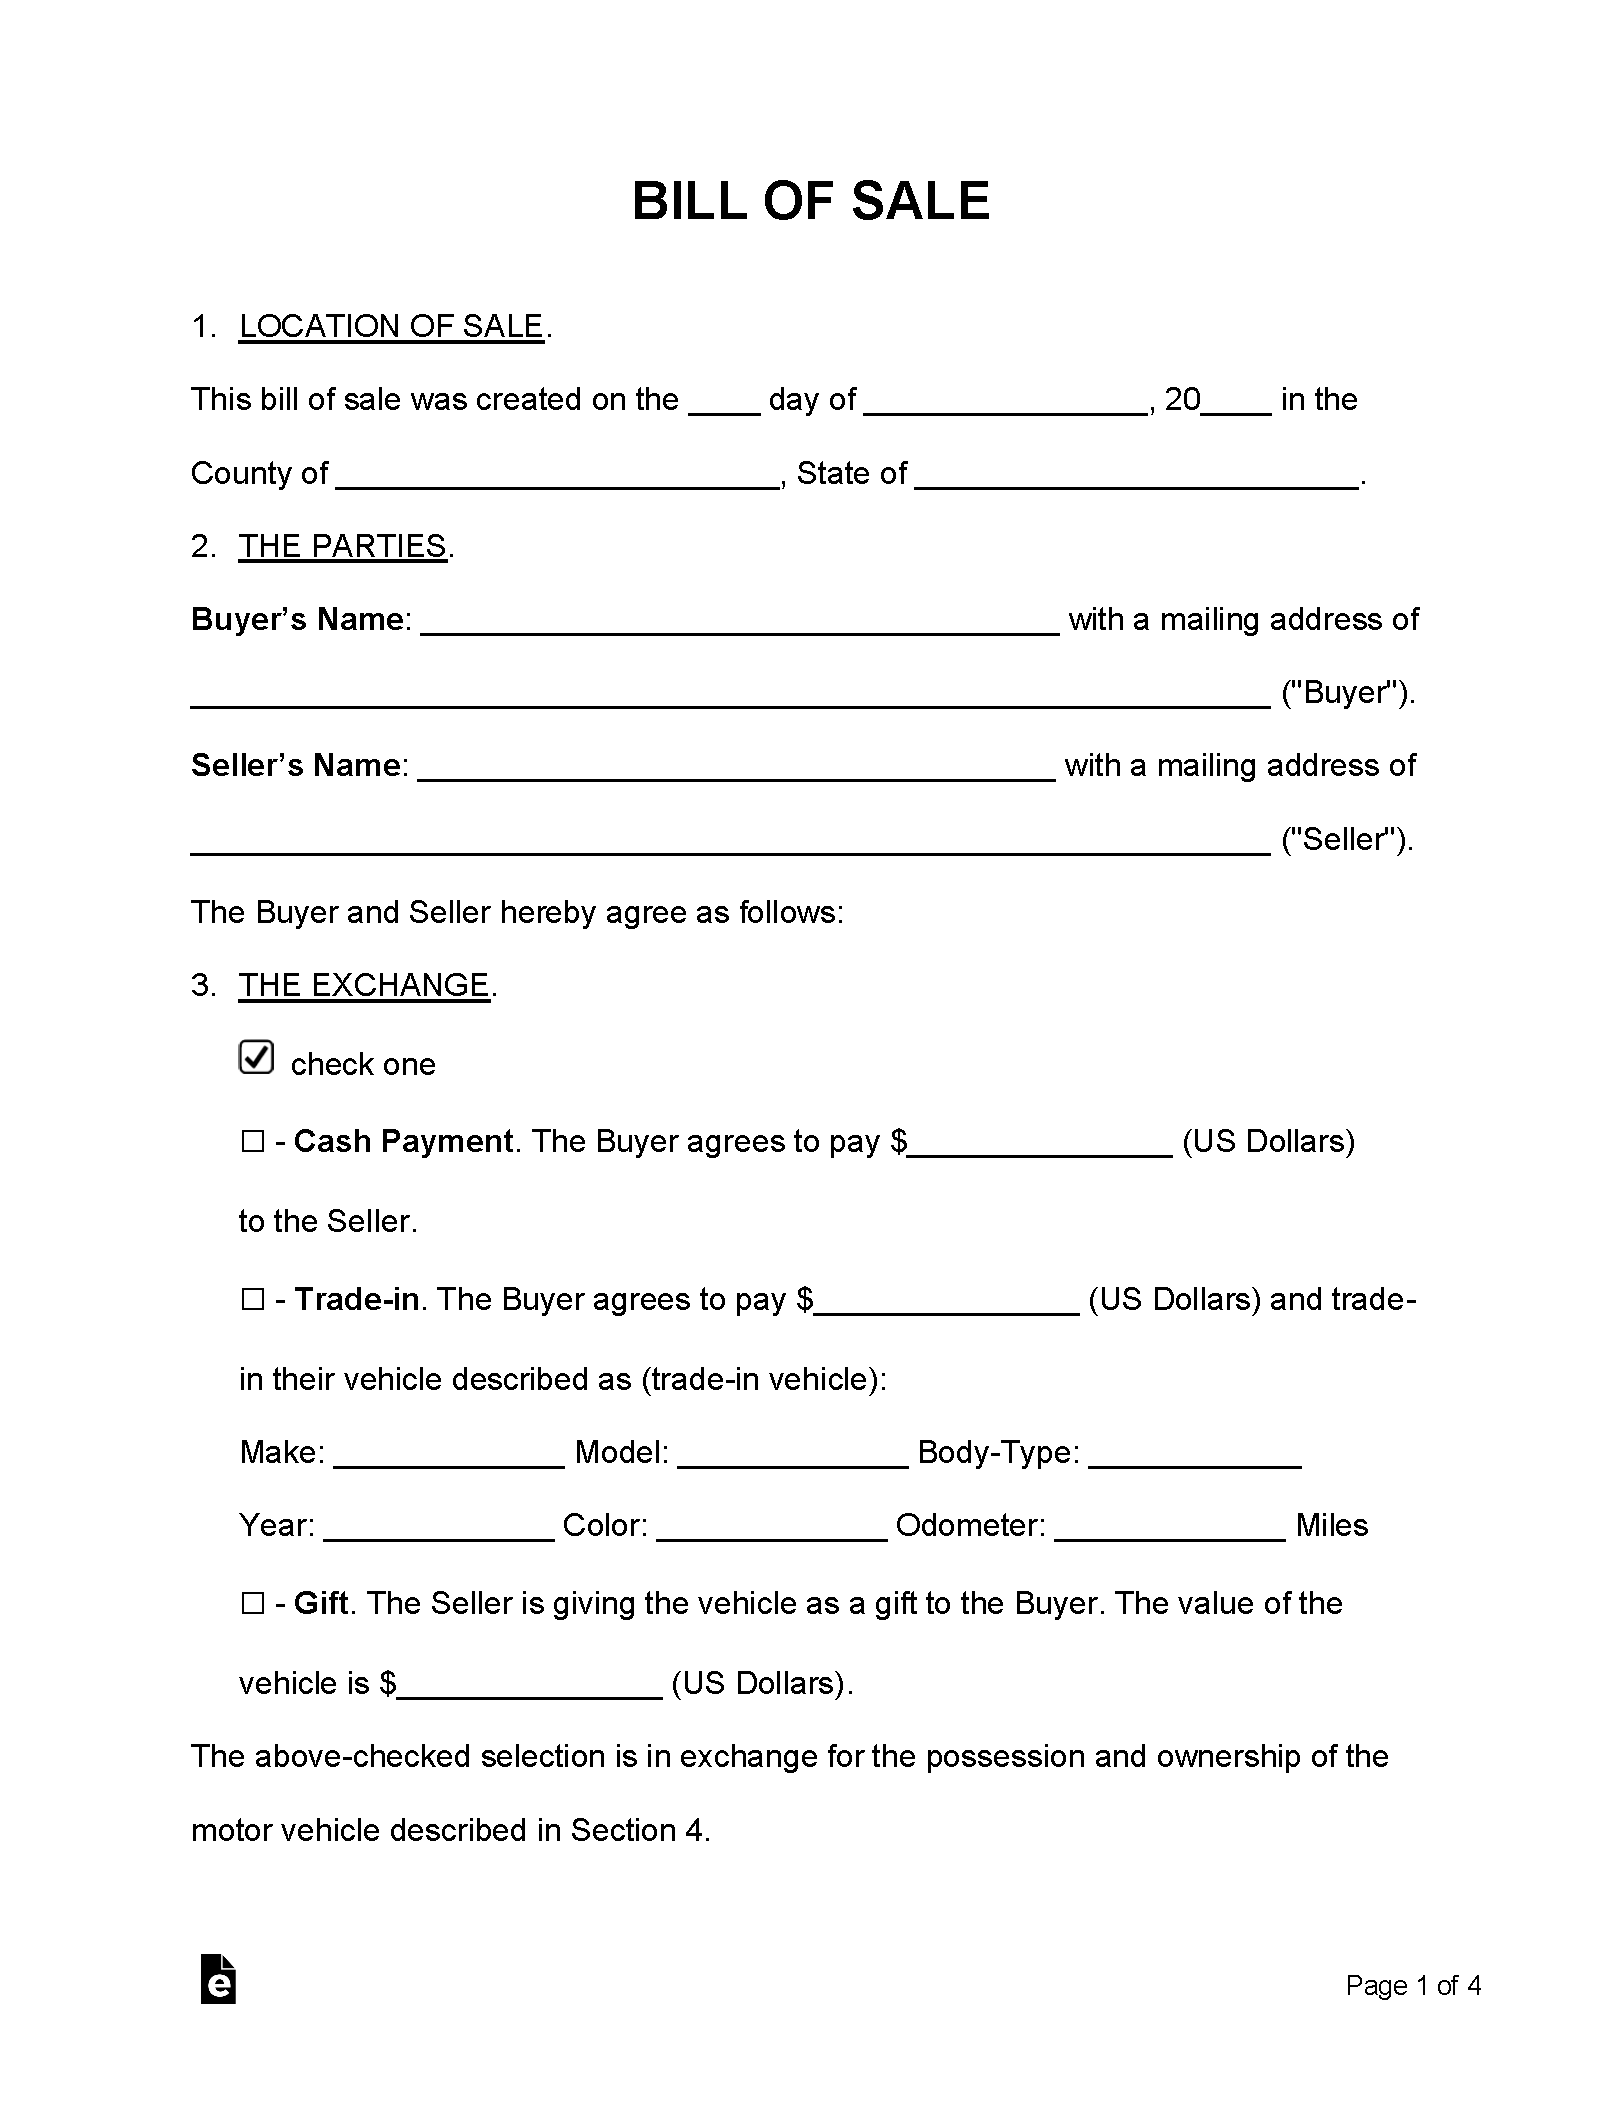 Free Motor Vehicle (DMV) Bill of Sale Form - PDF | Word